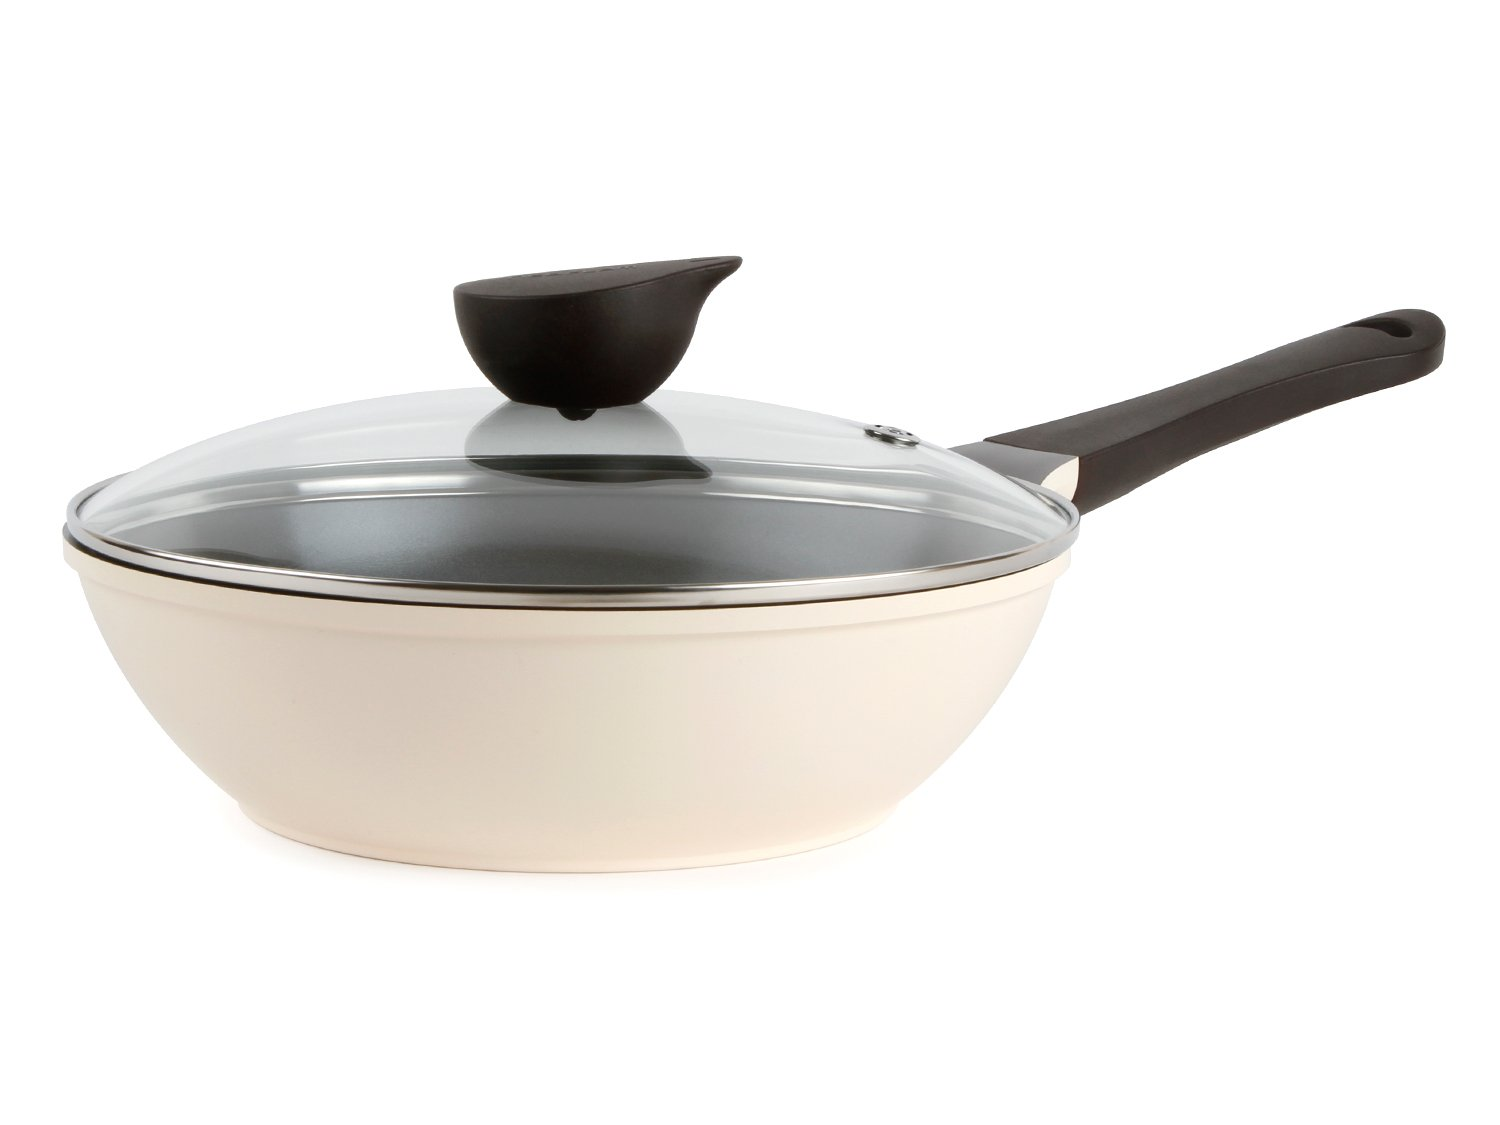 Wok (Chef's Pan) with Glass Lid - 10-inch Ceramic Nonstick in Ivory by Neoflam 51220